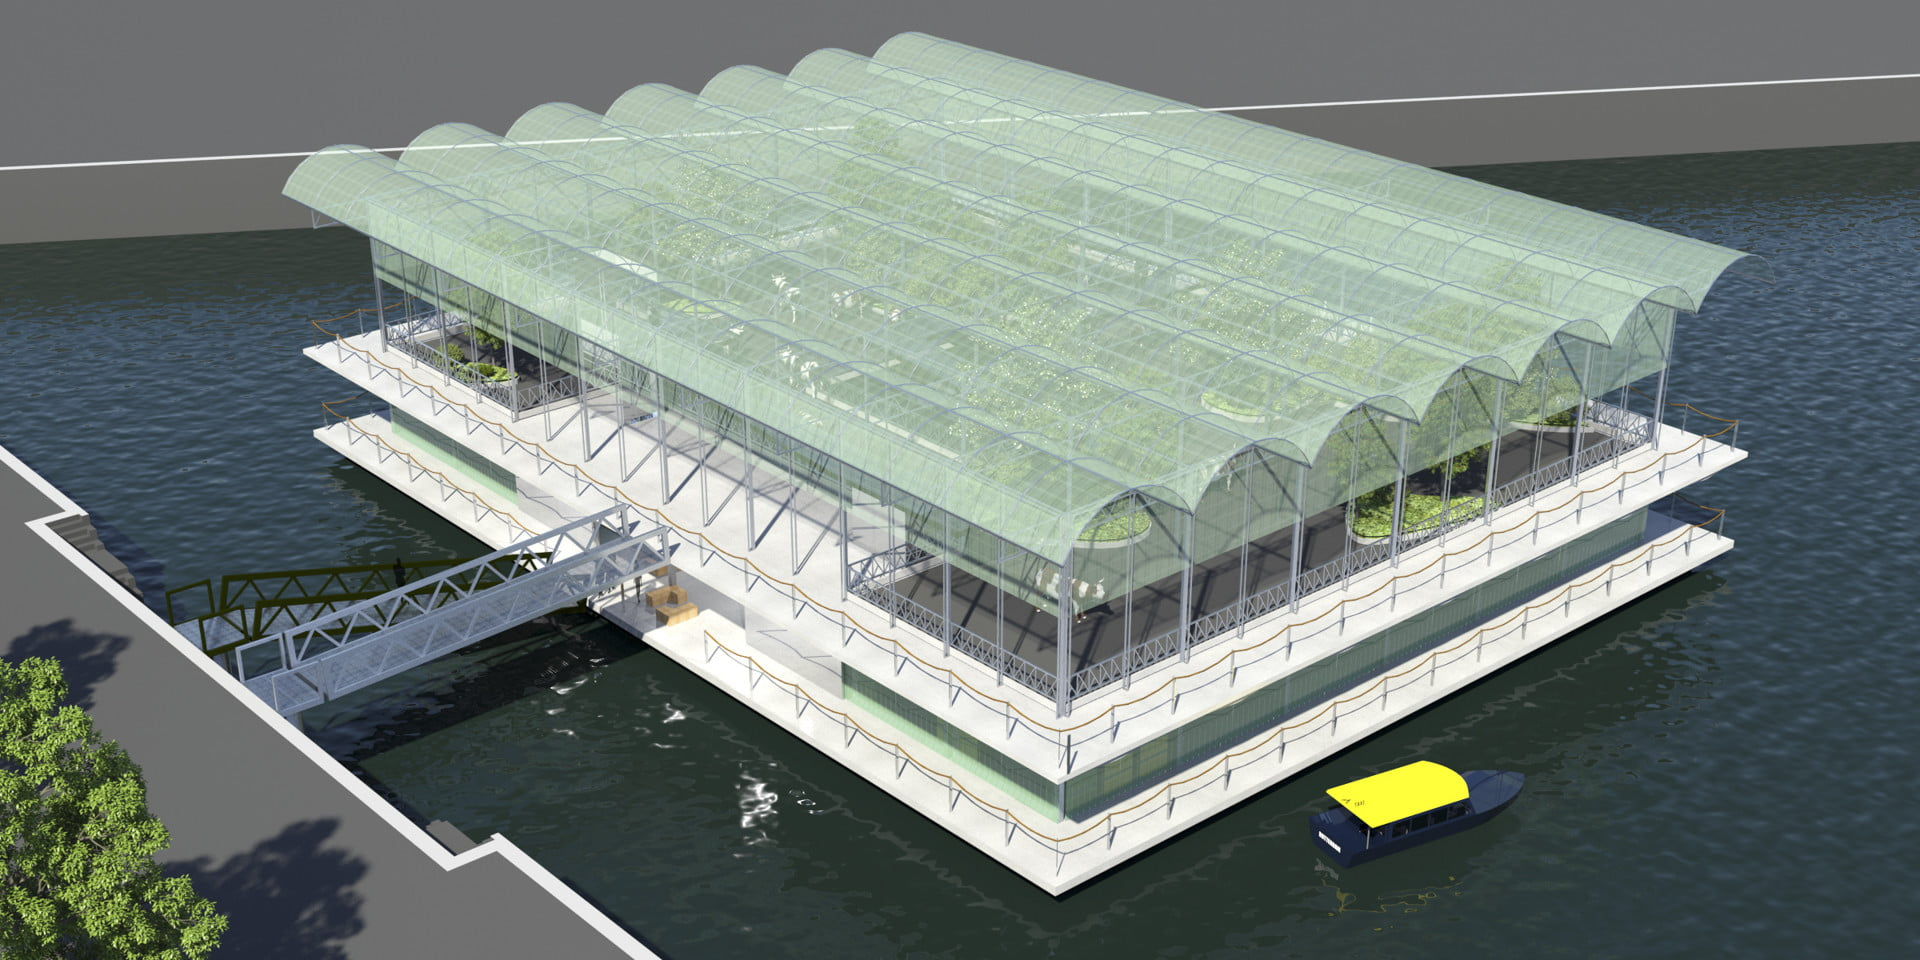 To make more room for livestock, the Dutch will moove cows to a floating farm